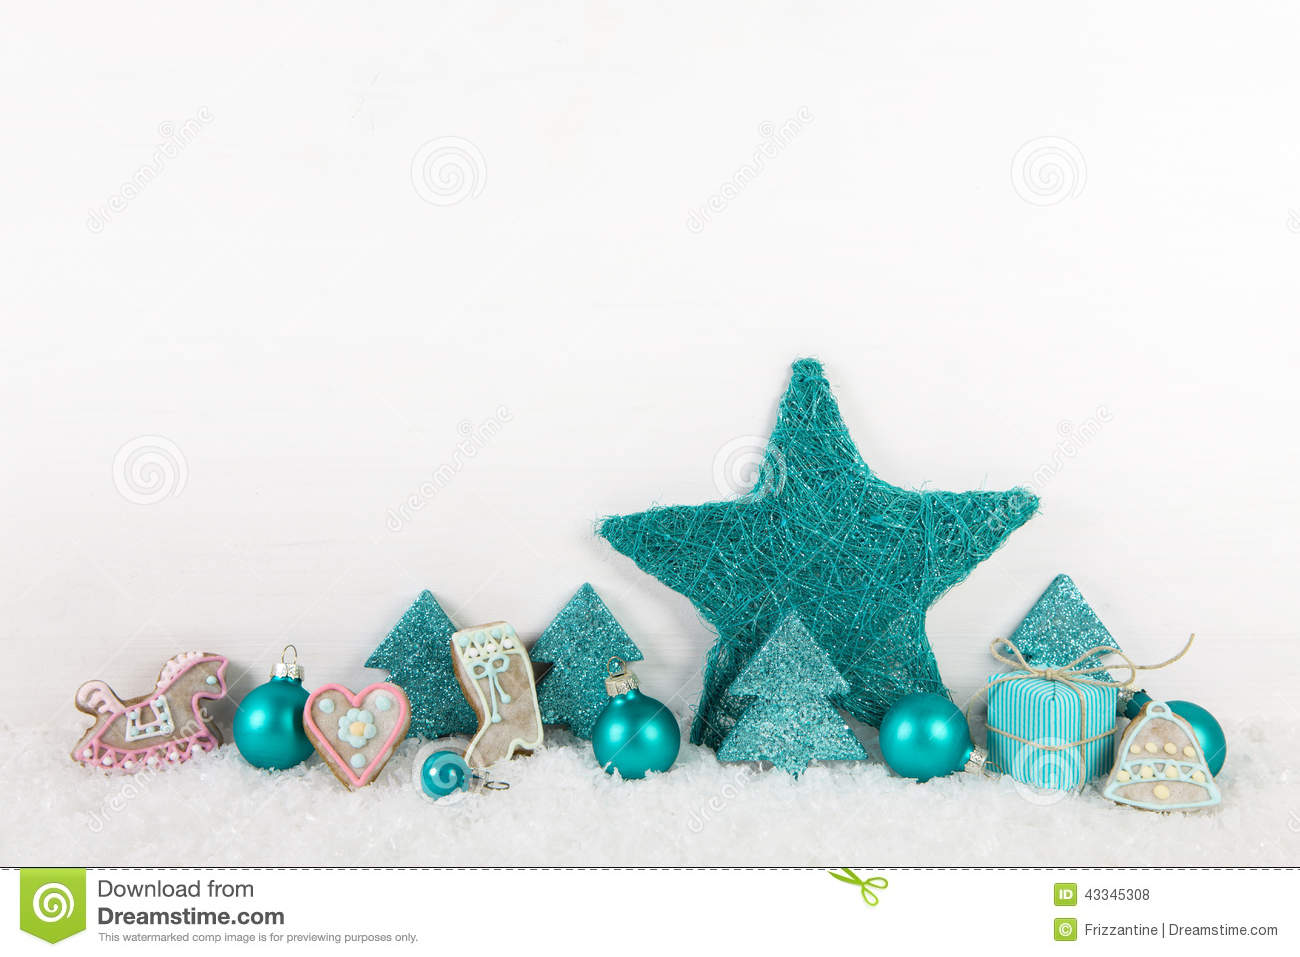 turquoise christmas decoration on wooden background with snow